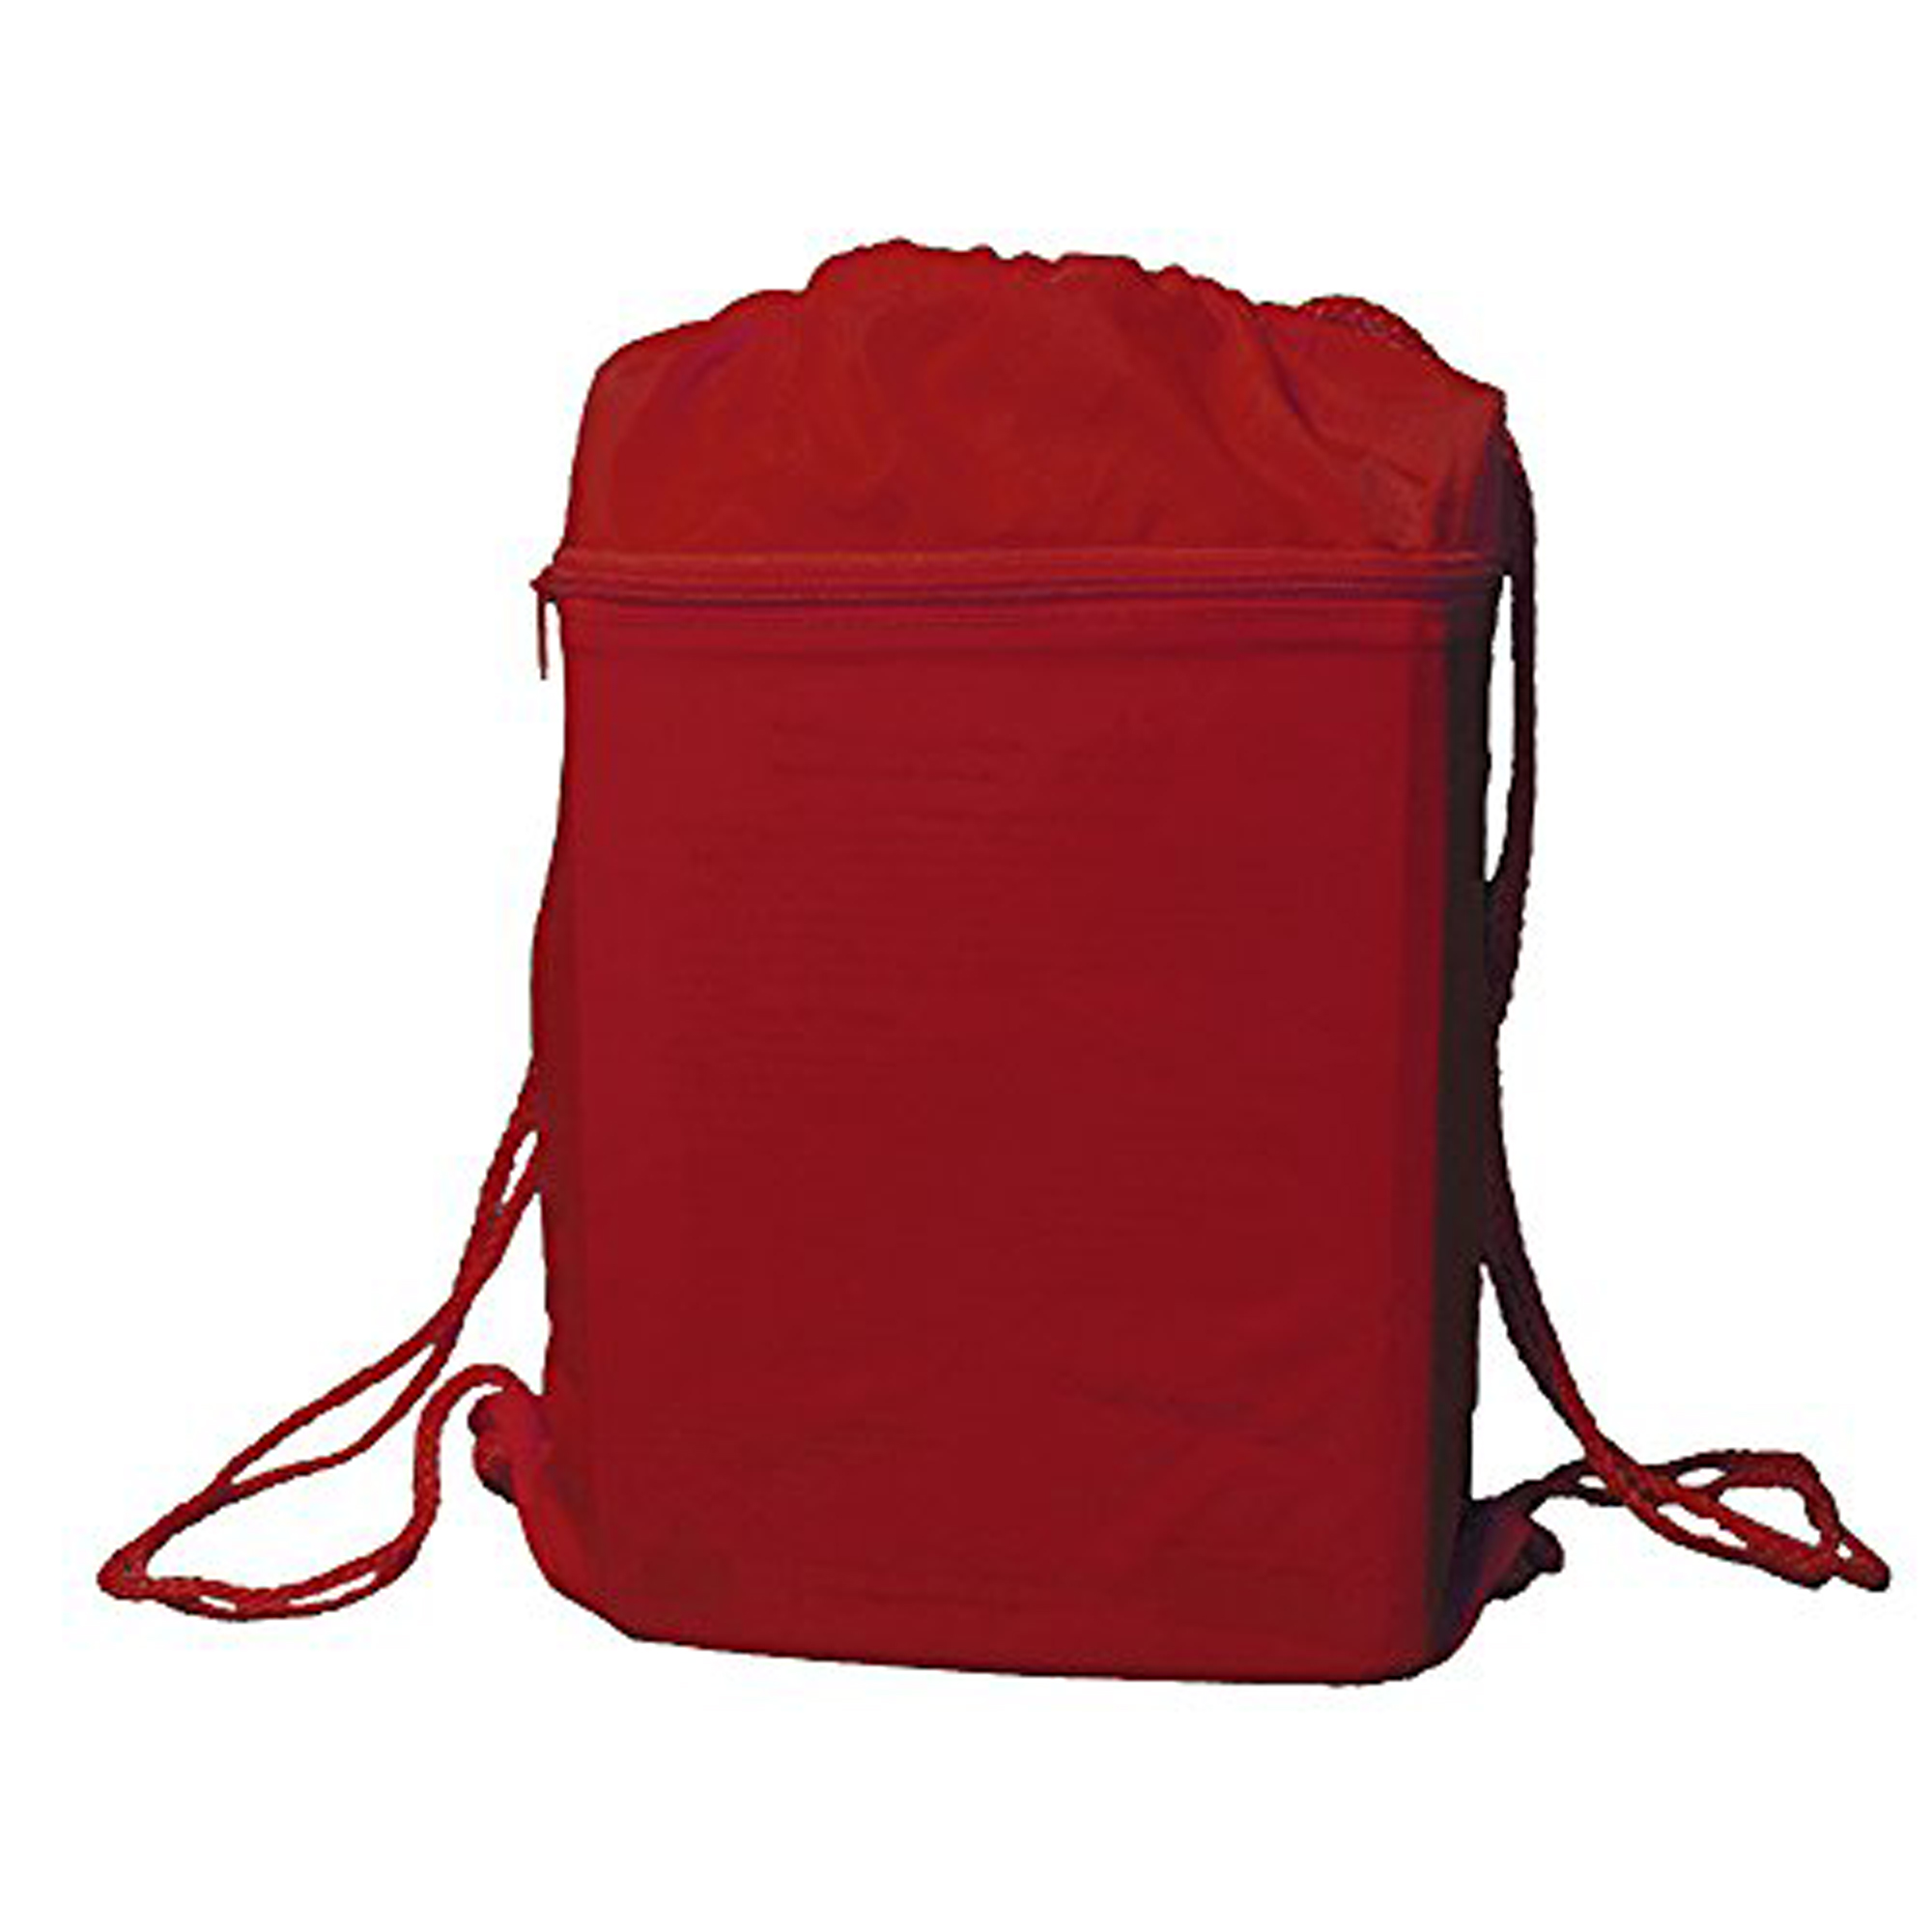 Bright Red Drawstring Cinch Sports Travel Bag by Everest